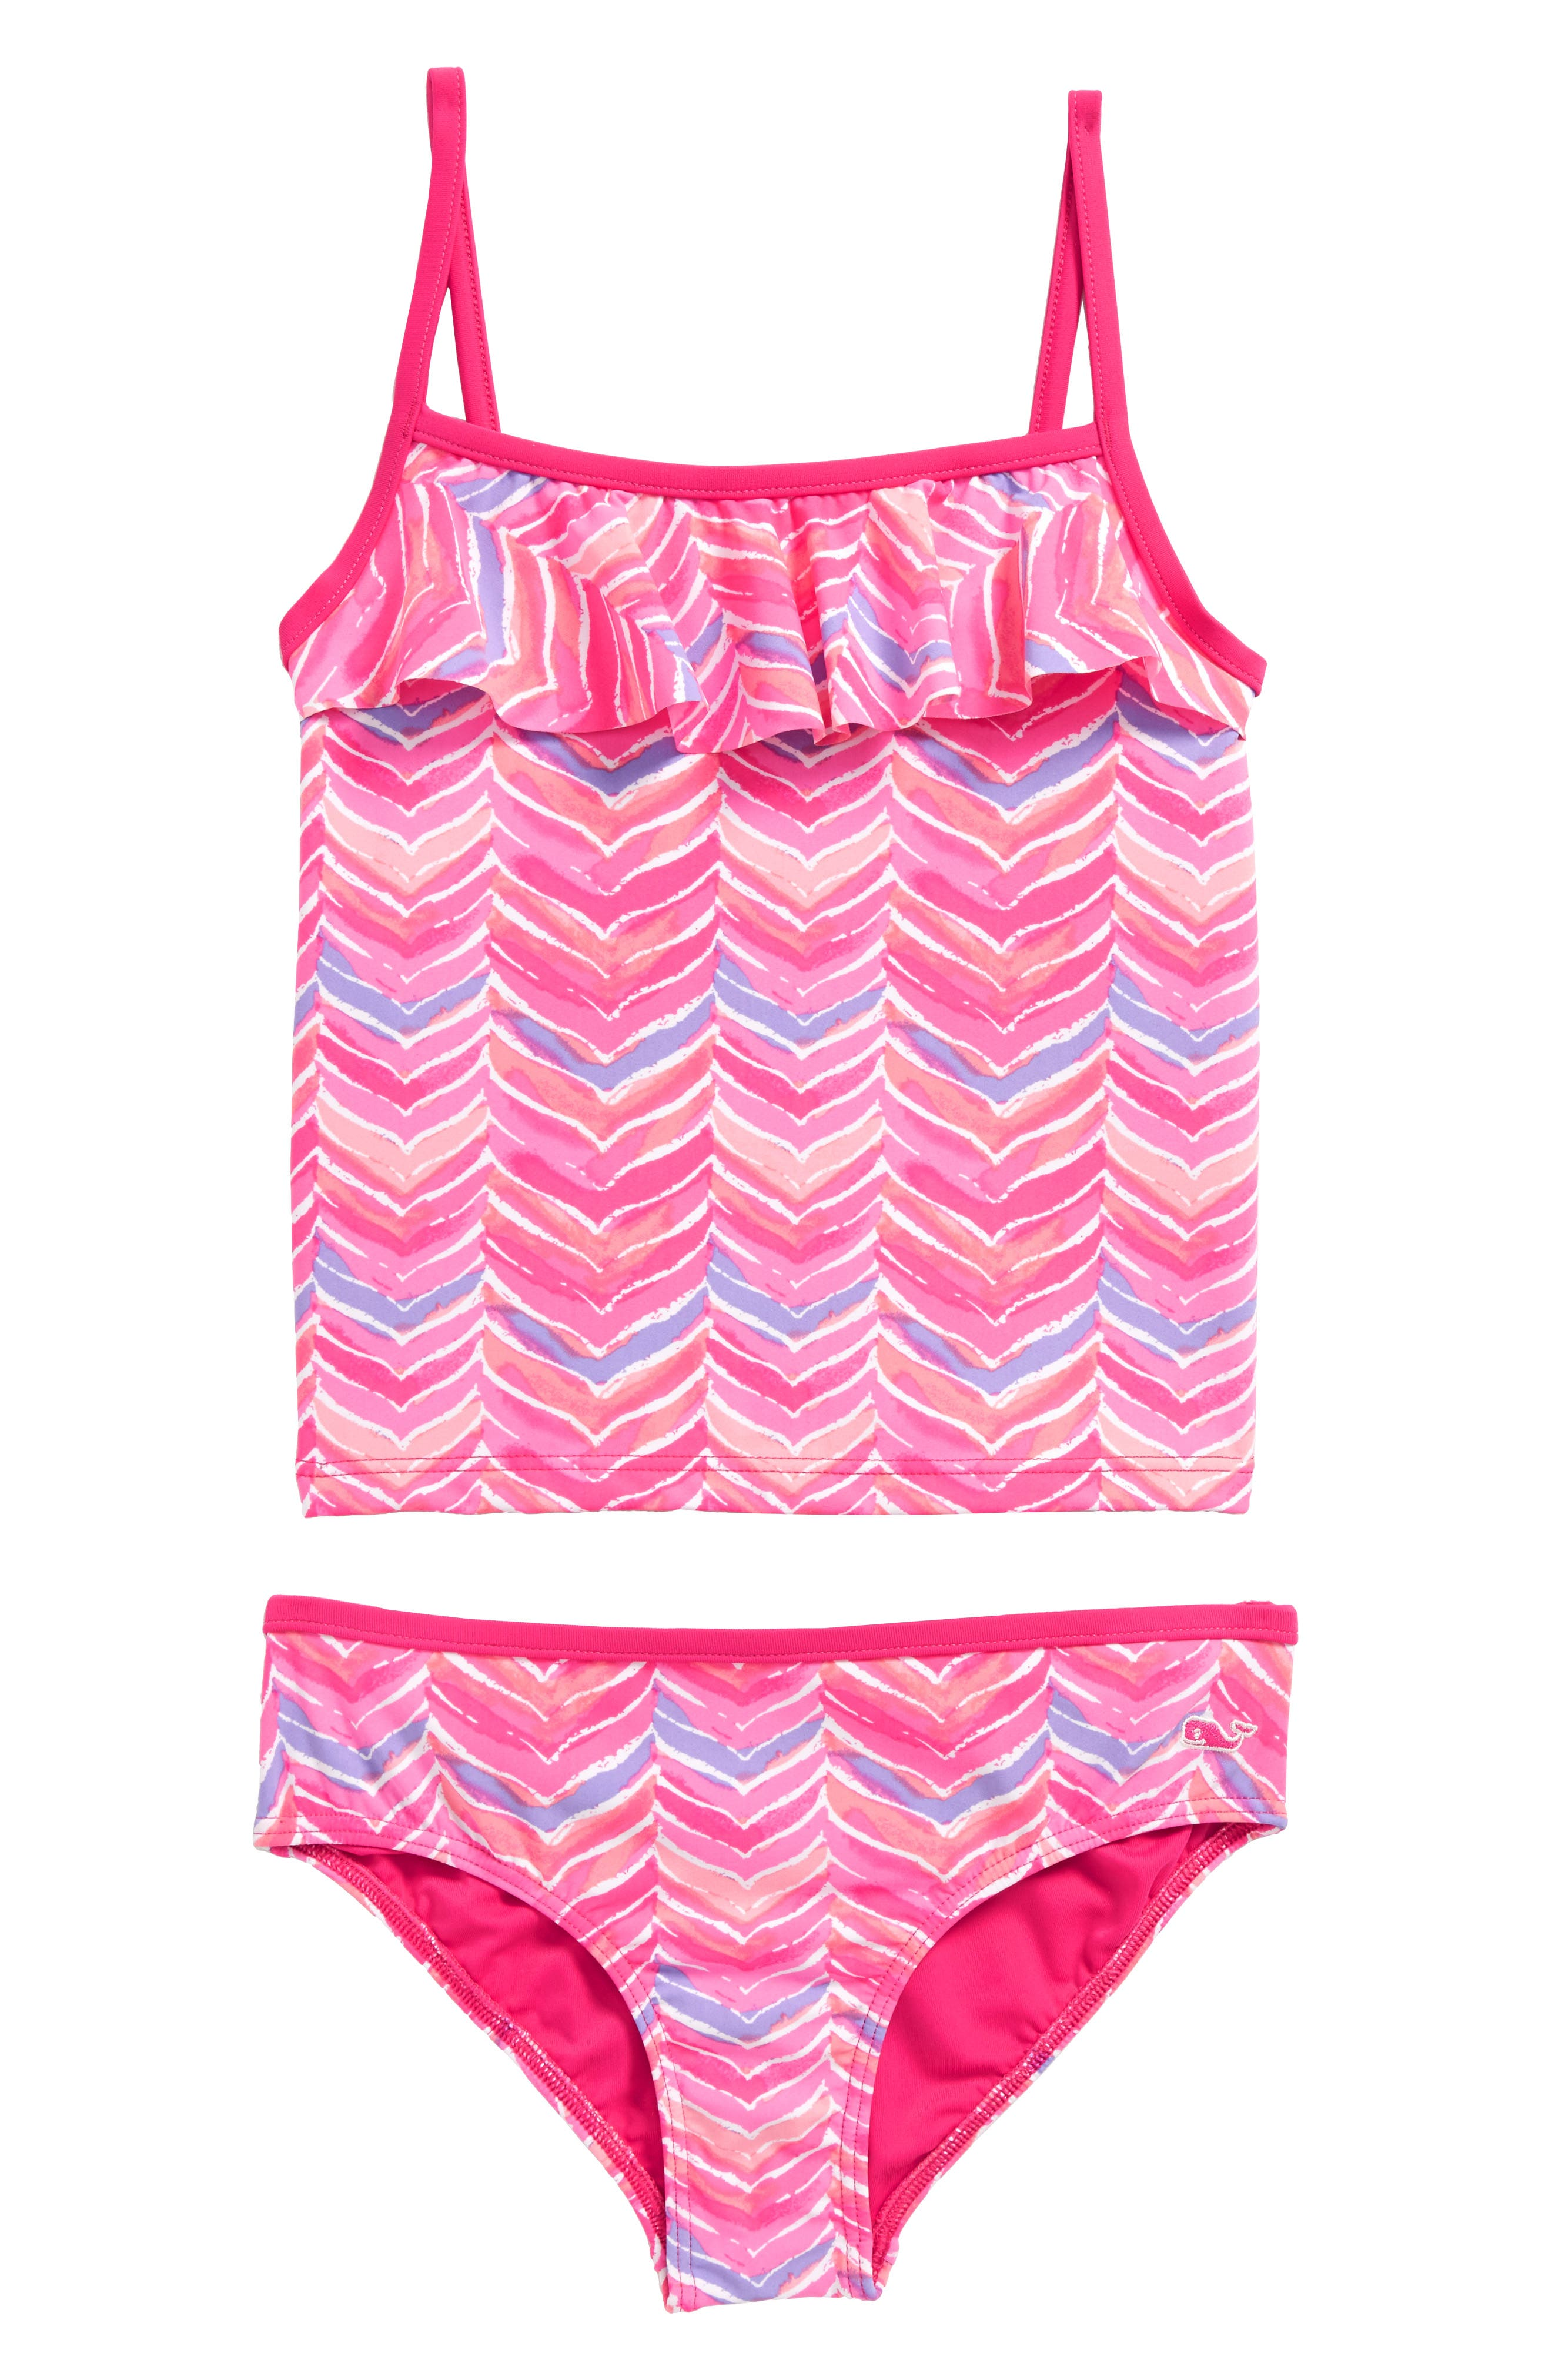 Main Image - vineyard vines Whale Tail Two-Piece Tankini Swimsuit (Little Girls & Big Girls)